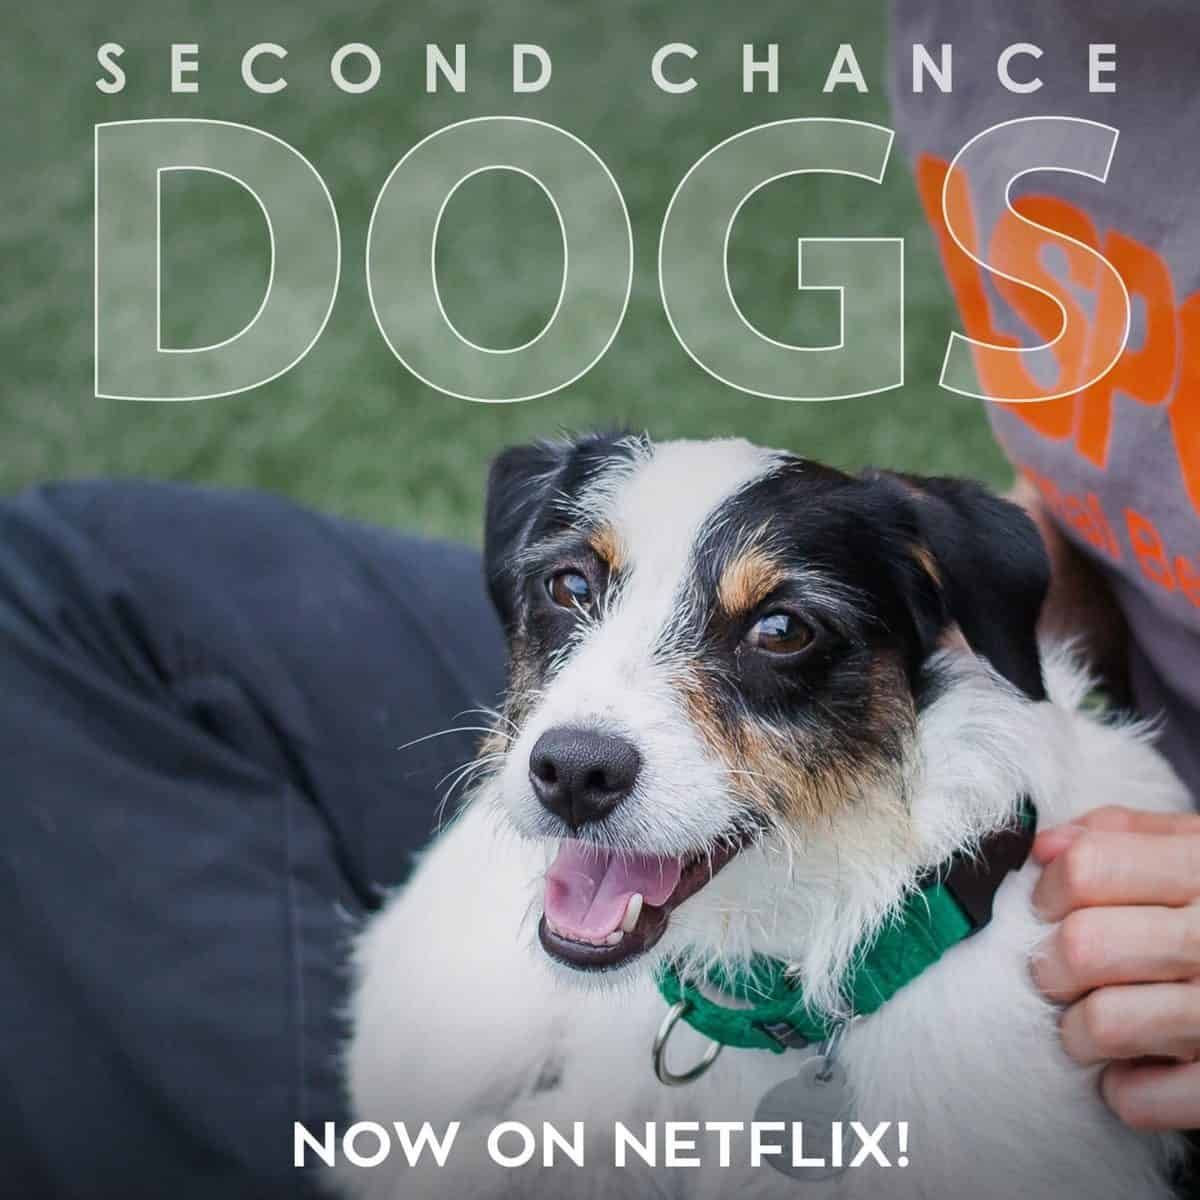 Second Chance Dogs Documentary